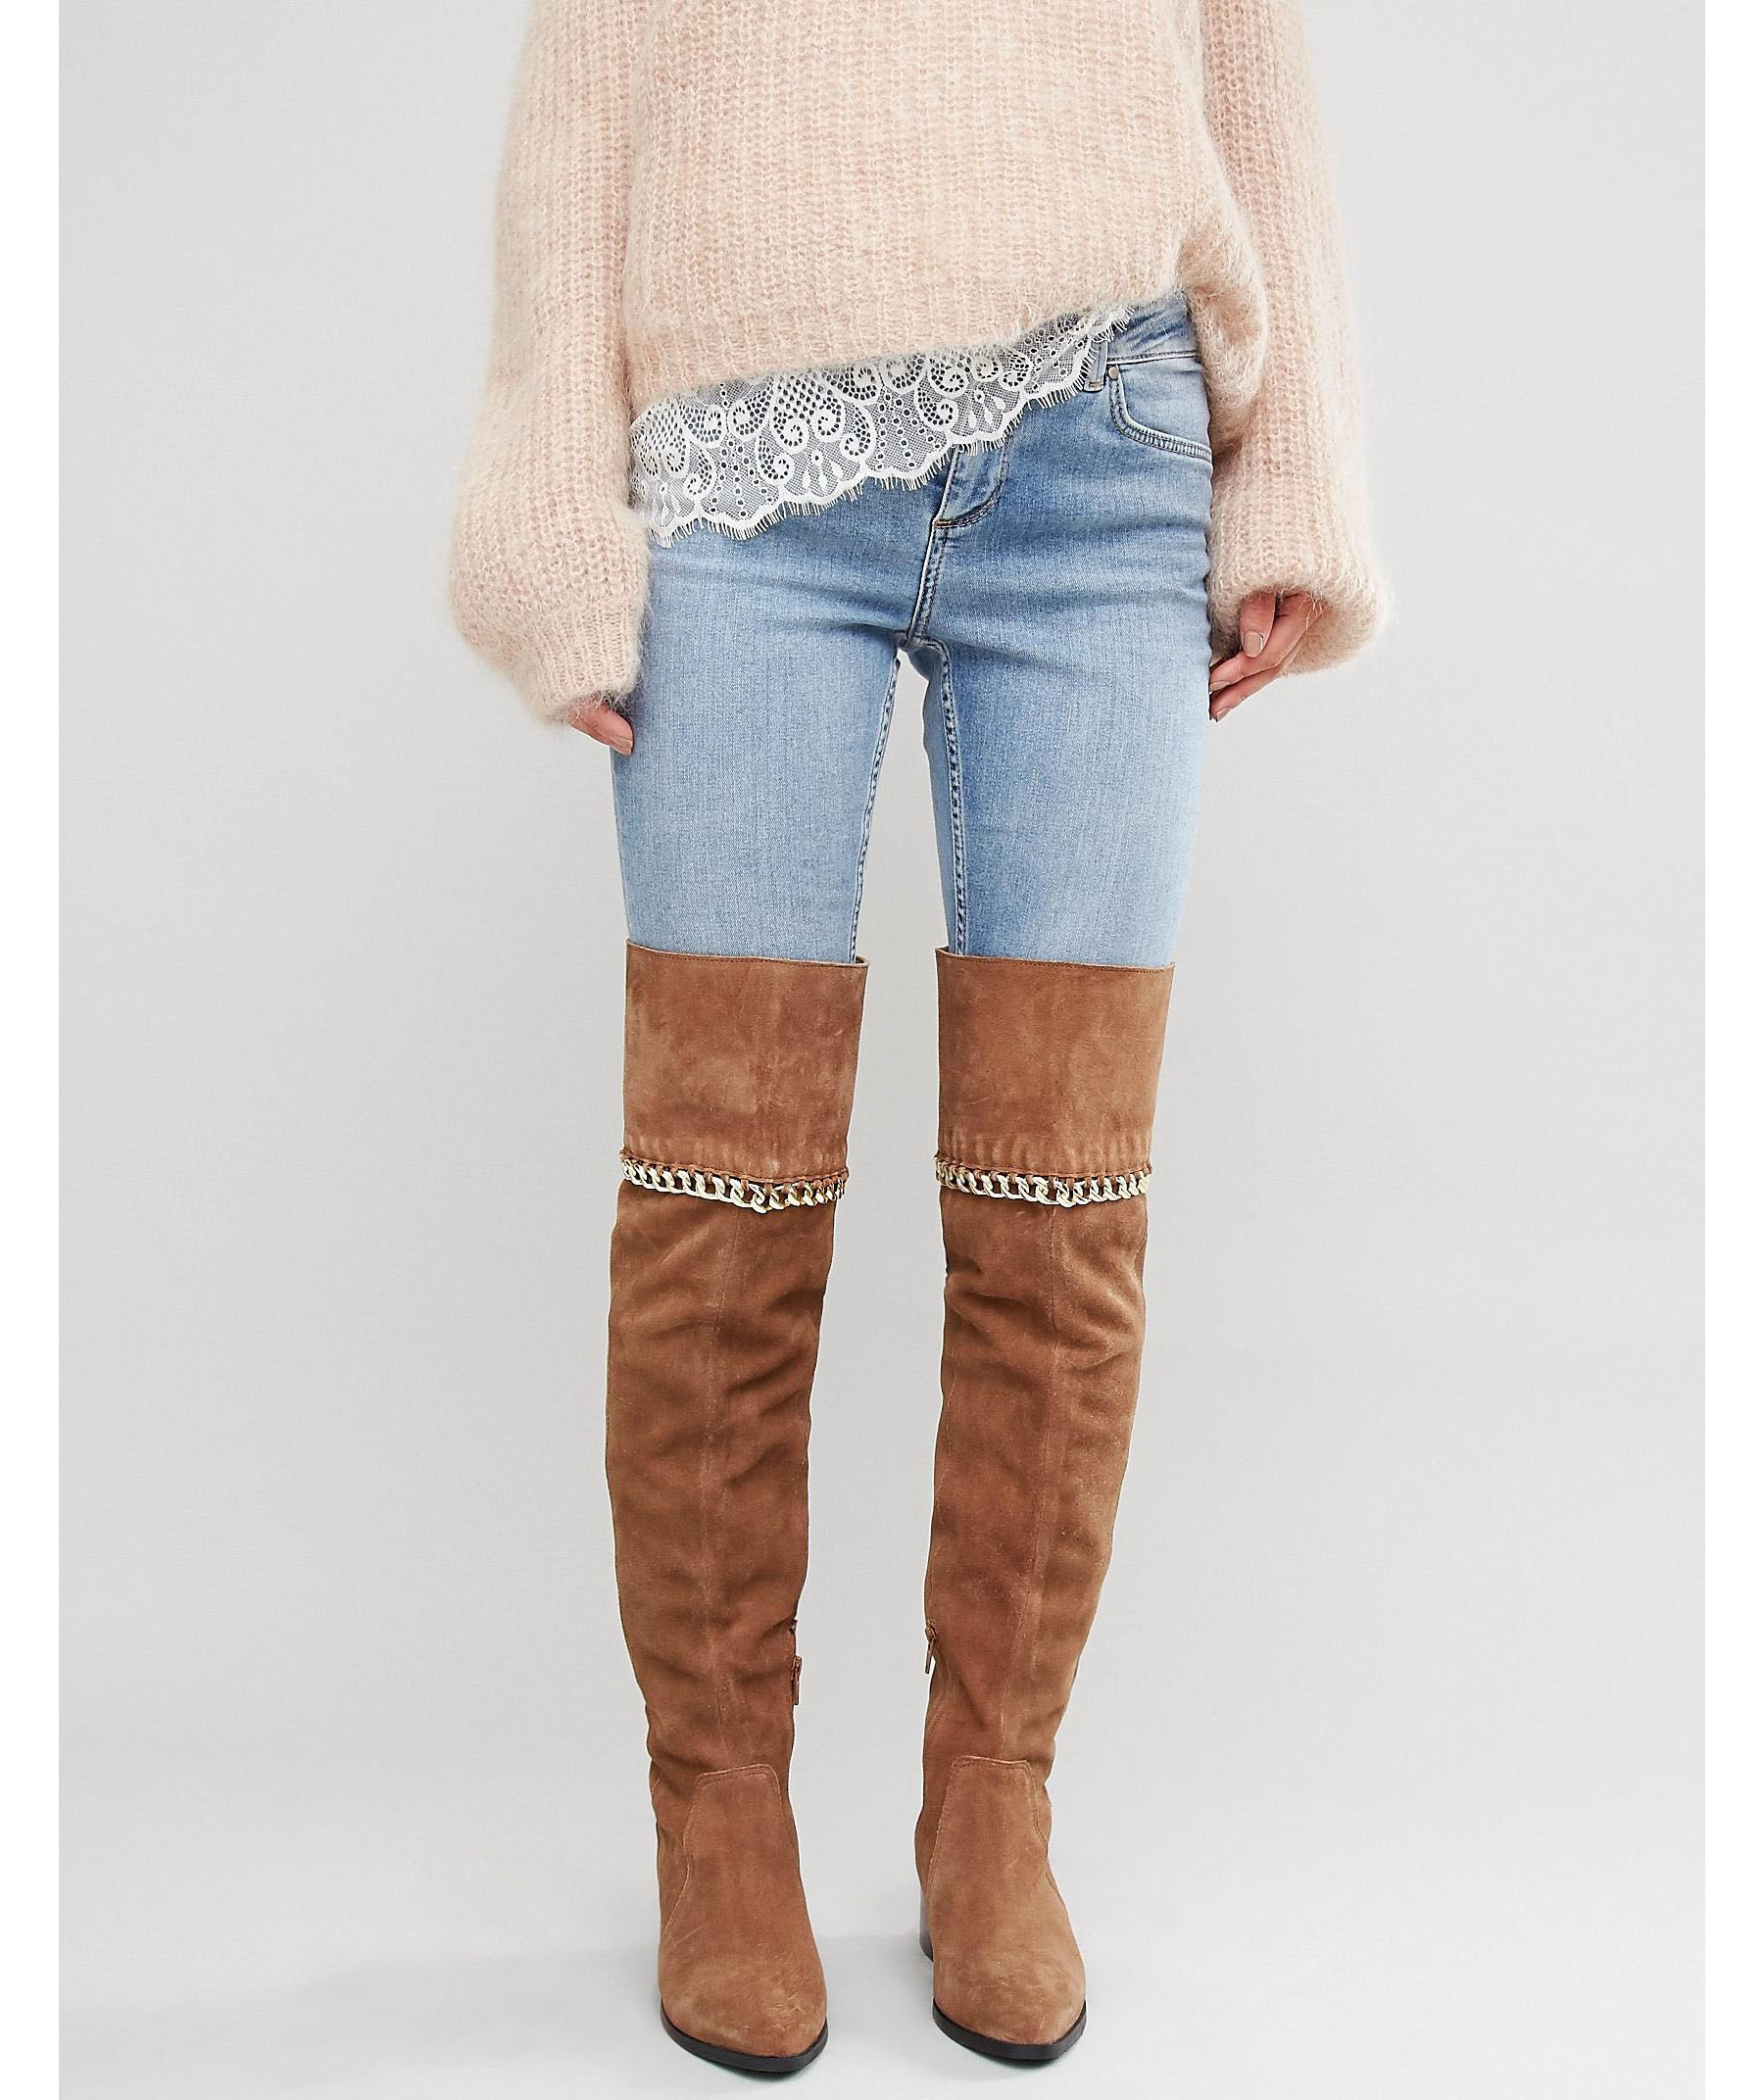 8200a2a6743 ASOS Keeta Suede Chain Over The Knee Boots in Brown - Lyst